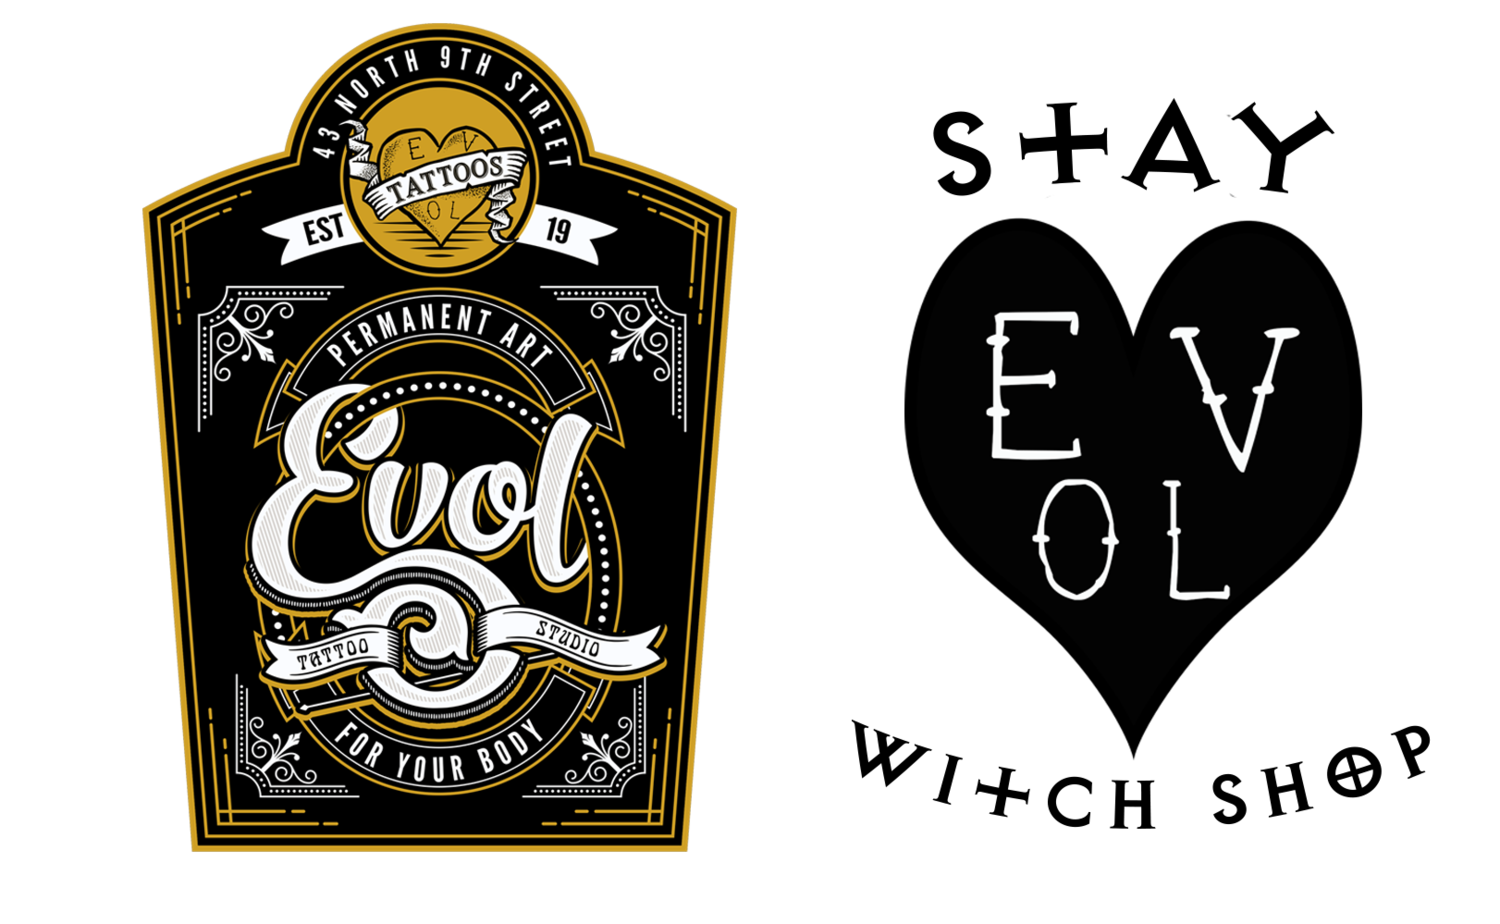 Evol Blog — Evol Tattoo and Witch Shop Allentown PA